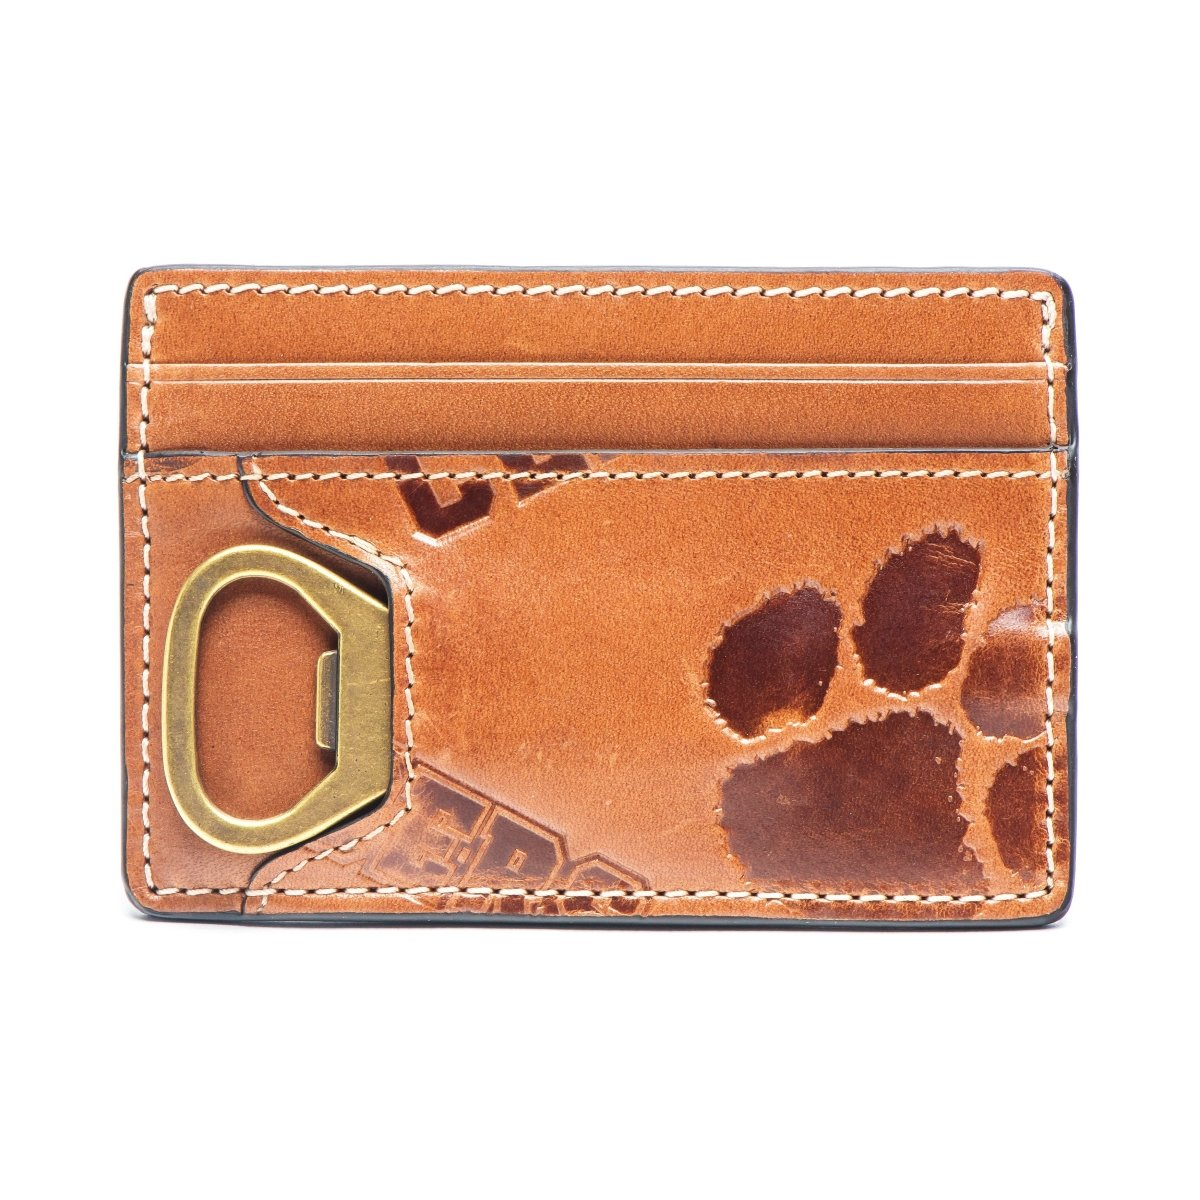 Sideline Id Card Case With Bottle Opener - Mr. Knickerbocker